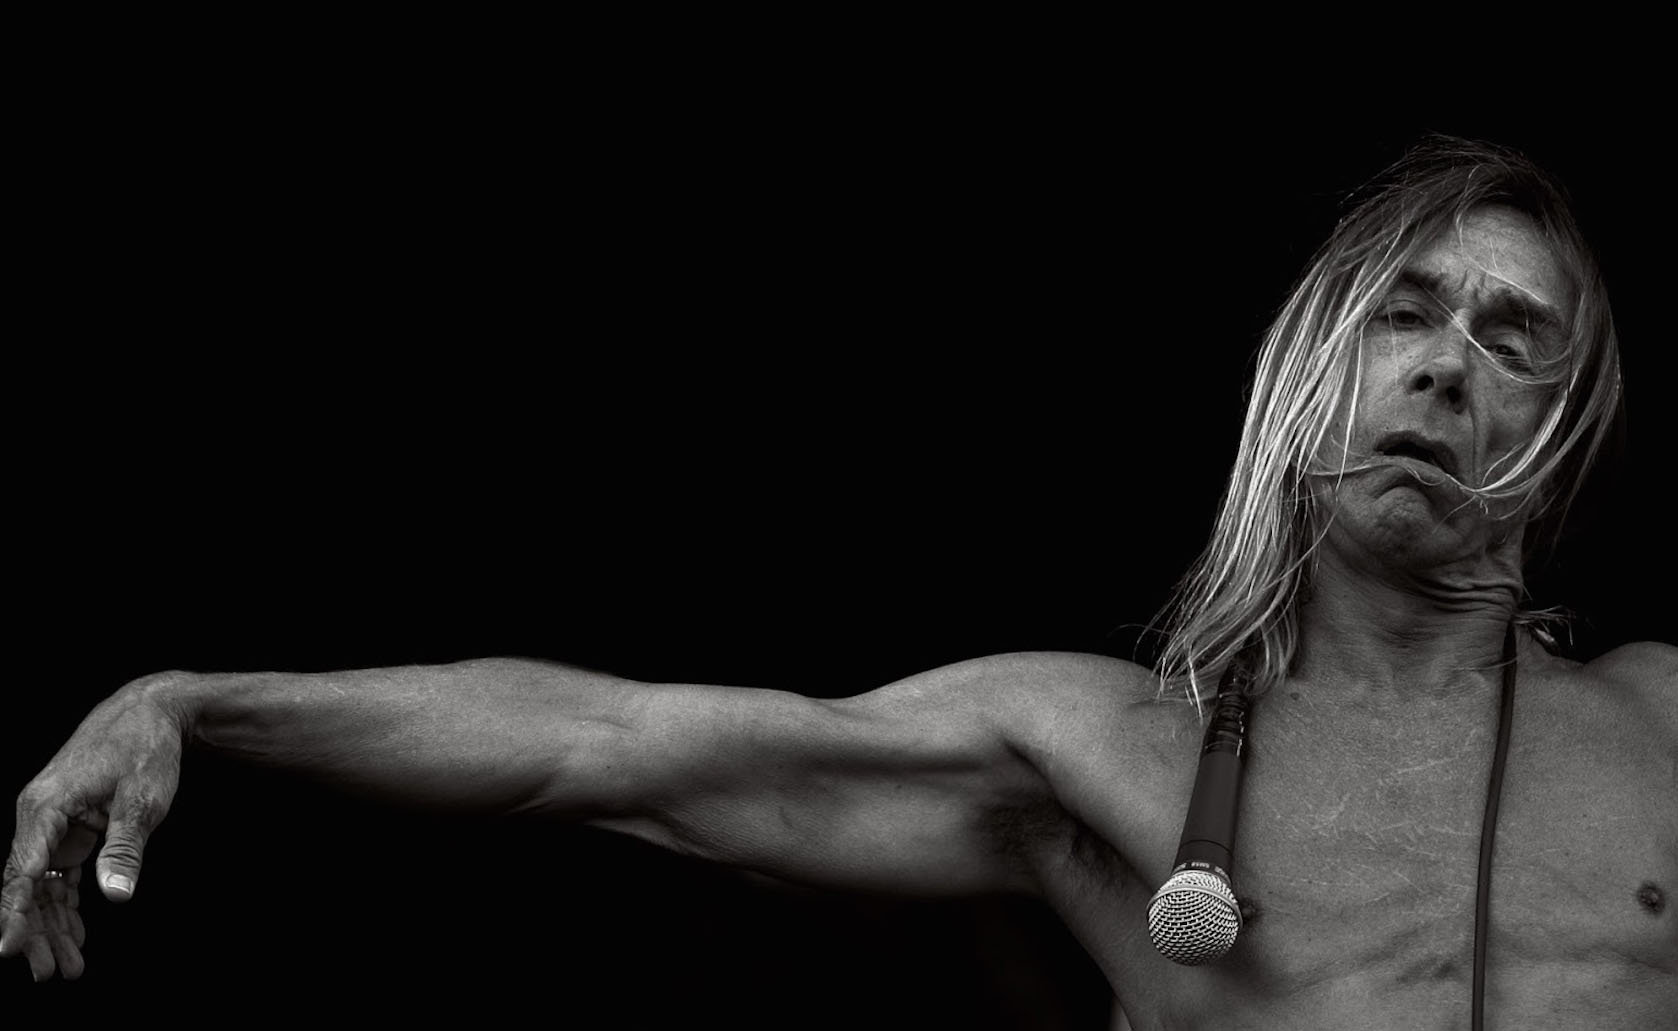 Happy birthday to king Iggy Pop. Make sure you catch his birthday show tonight on